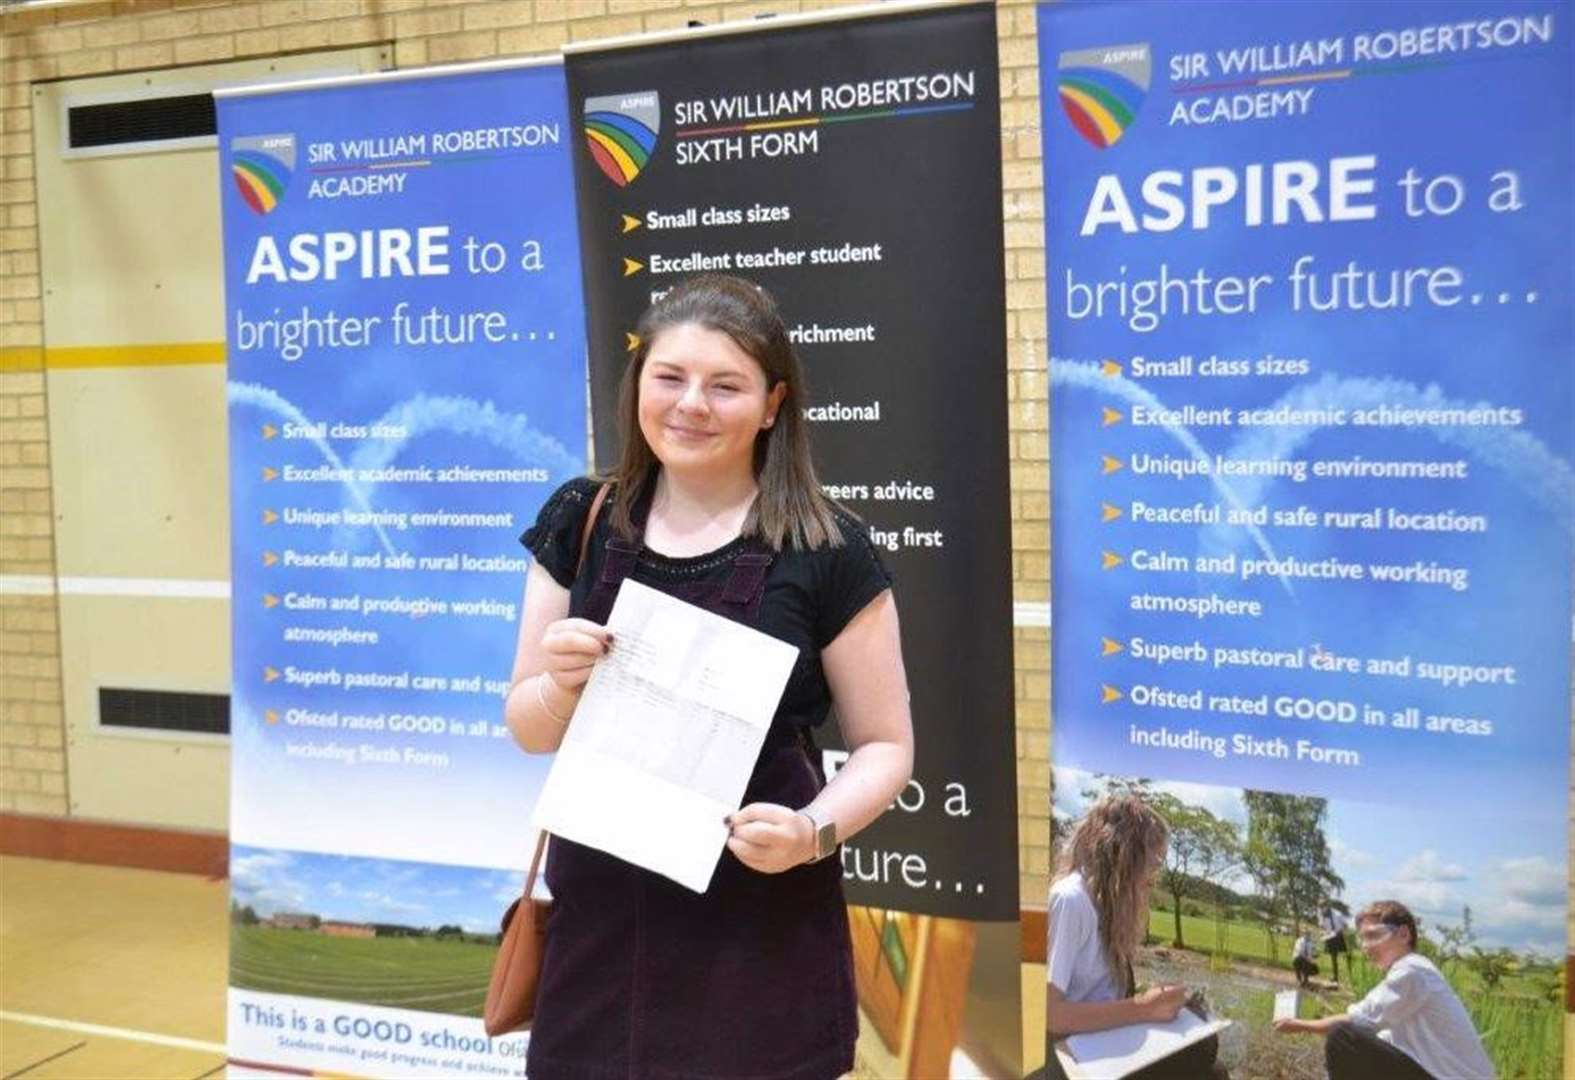 Sir William Robertson Academy achieved highest ever results